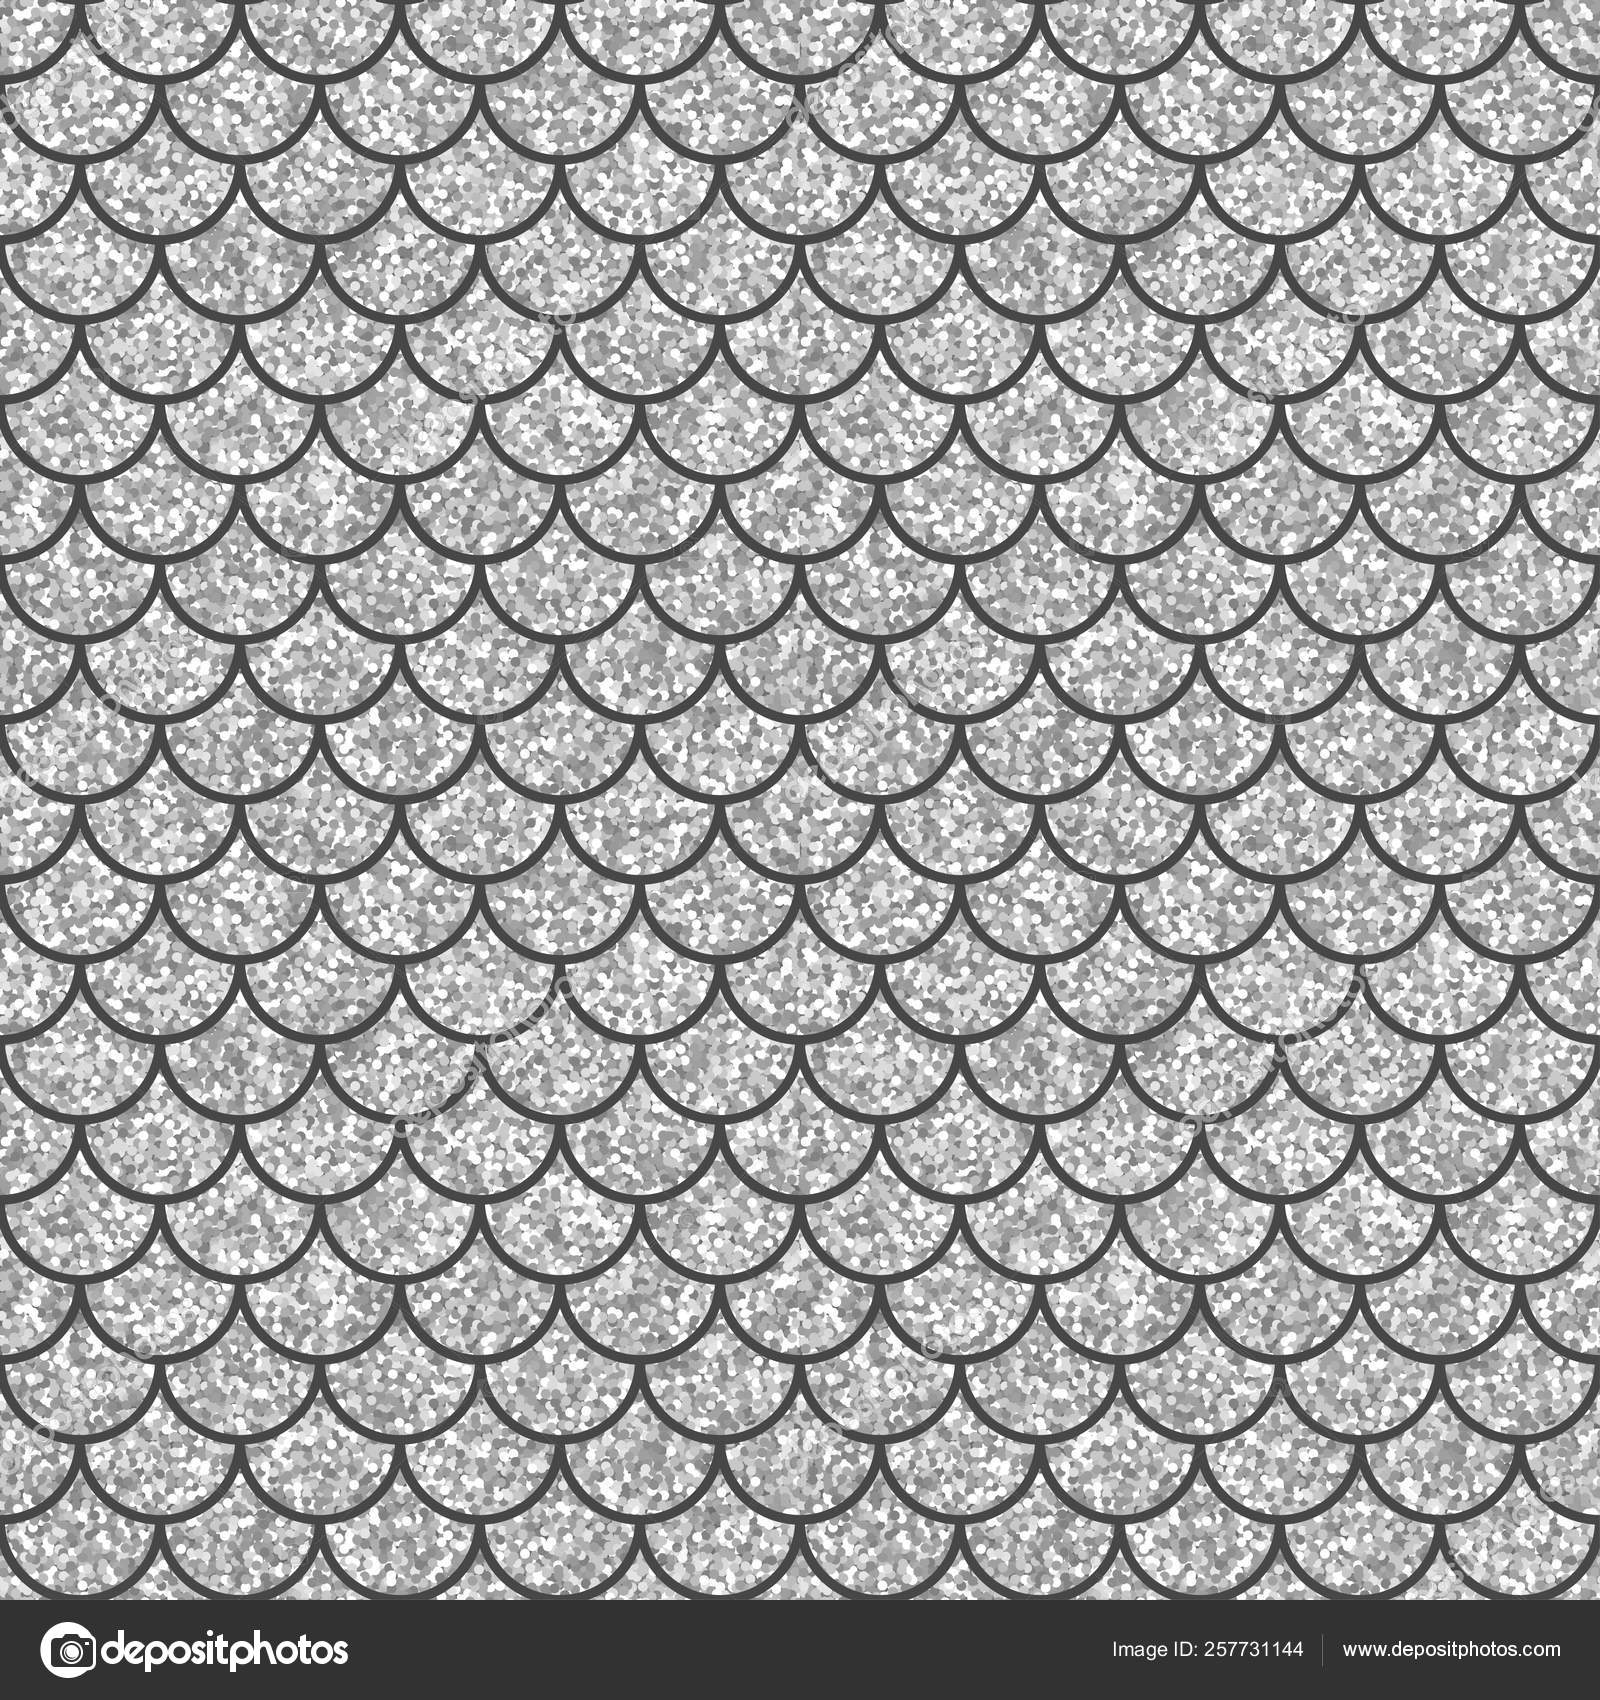 Silver glitter squama texture. Sparkle vector background. White scales seamless pattern for your design